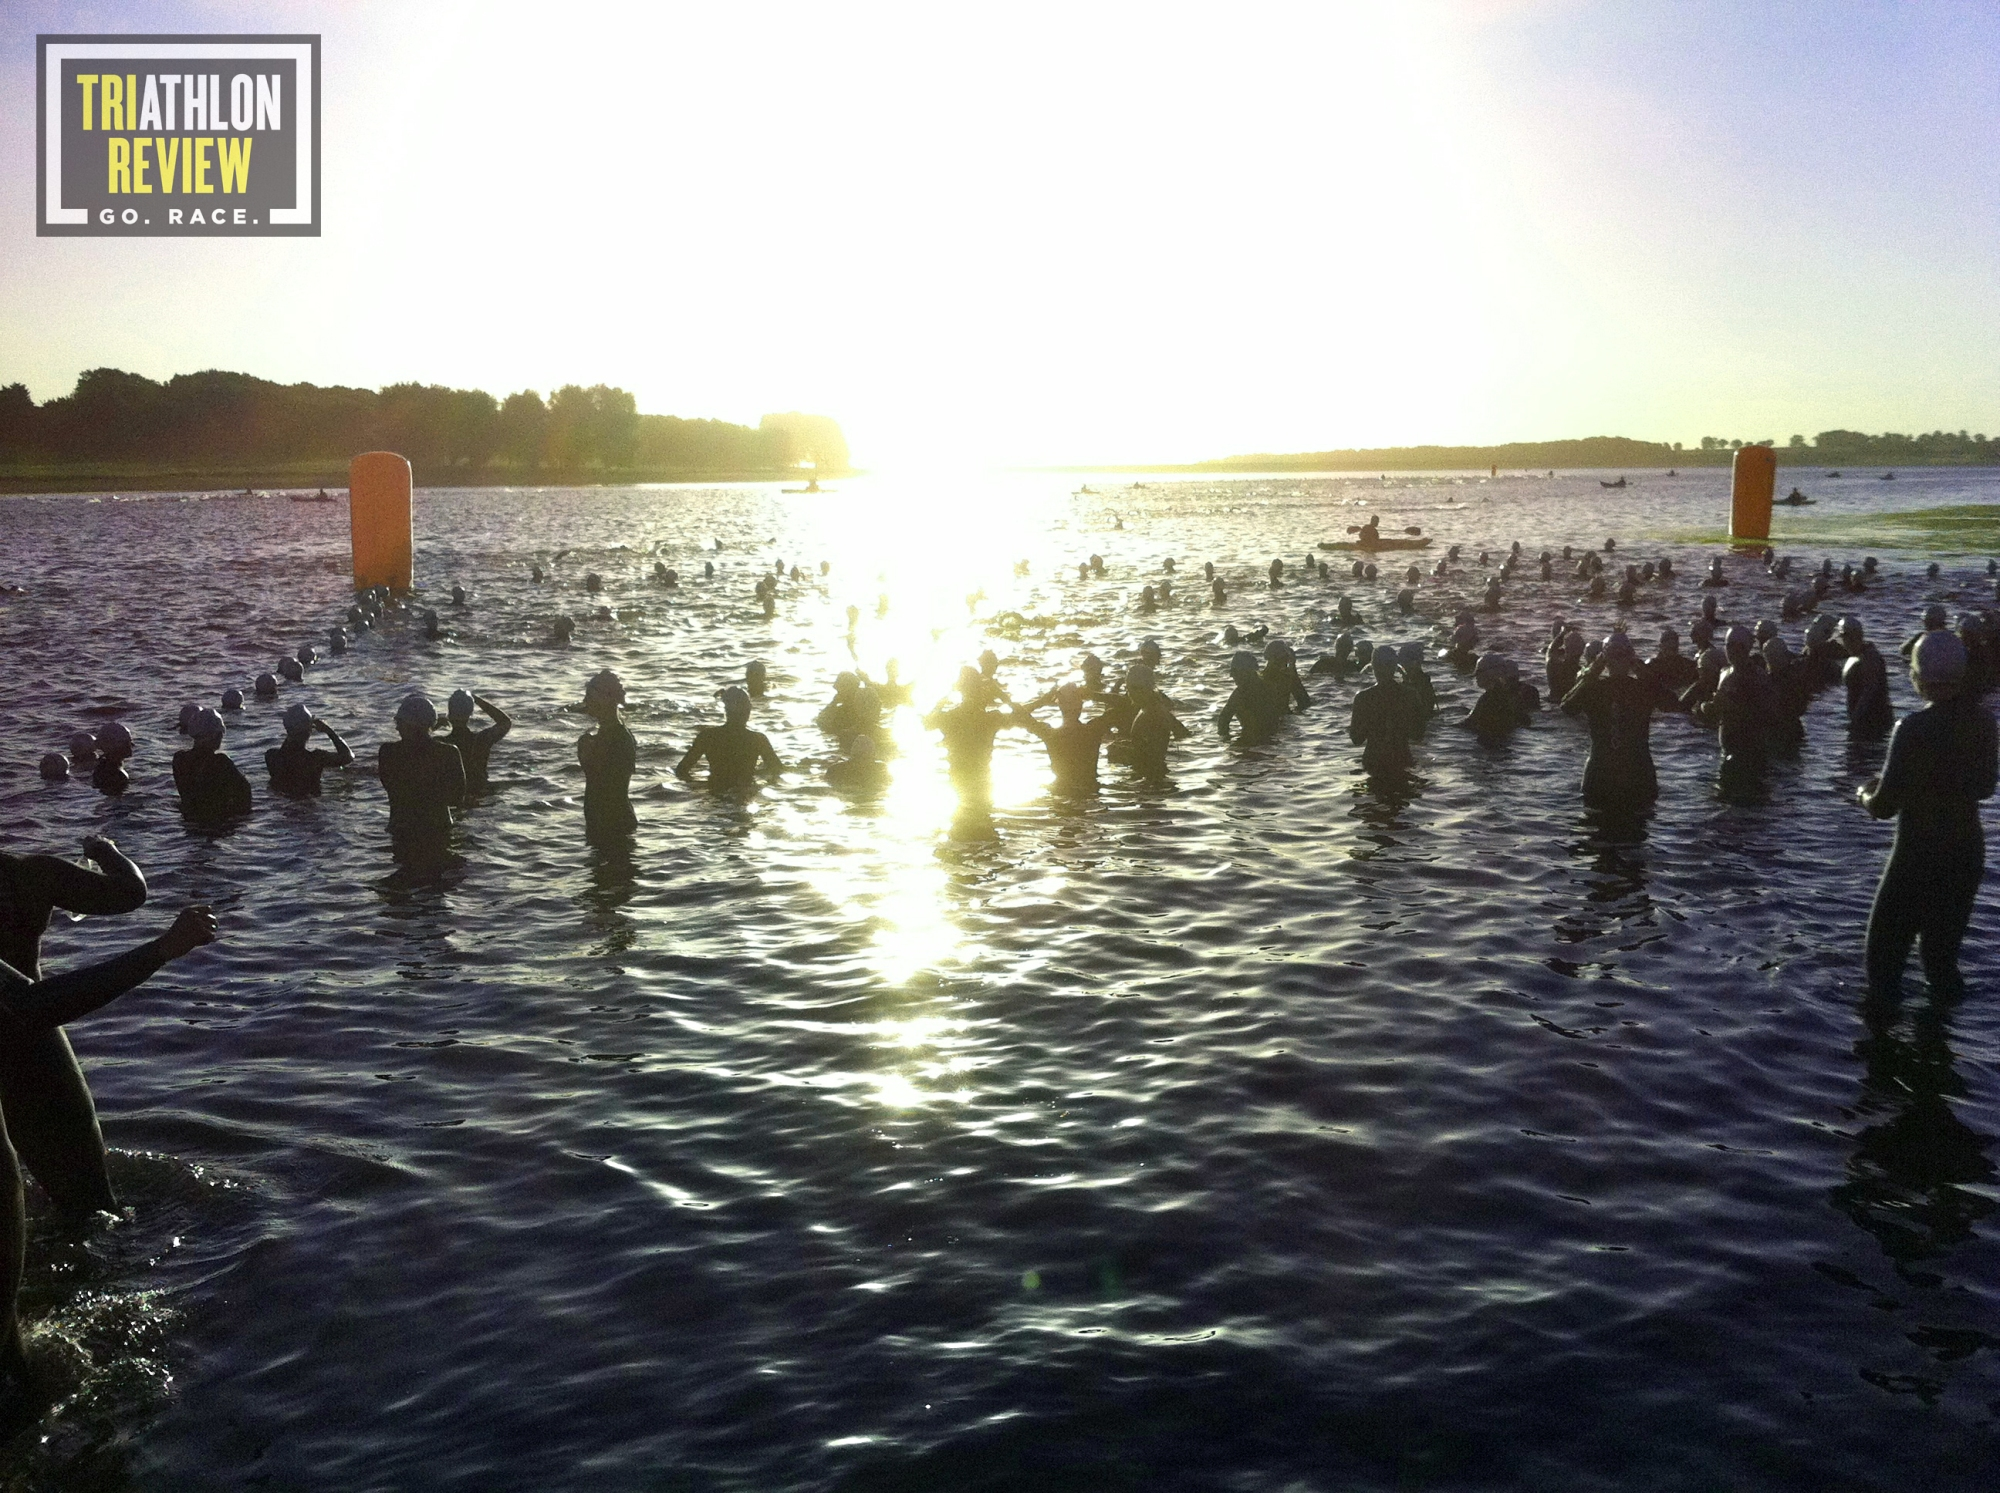 vitruvian triathlon review, vitruvian tri half ironman, triathlon review, half ironman tips, triathlon reviews